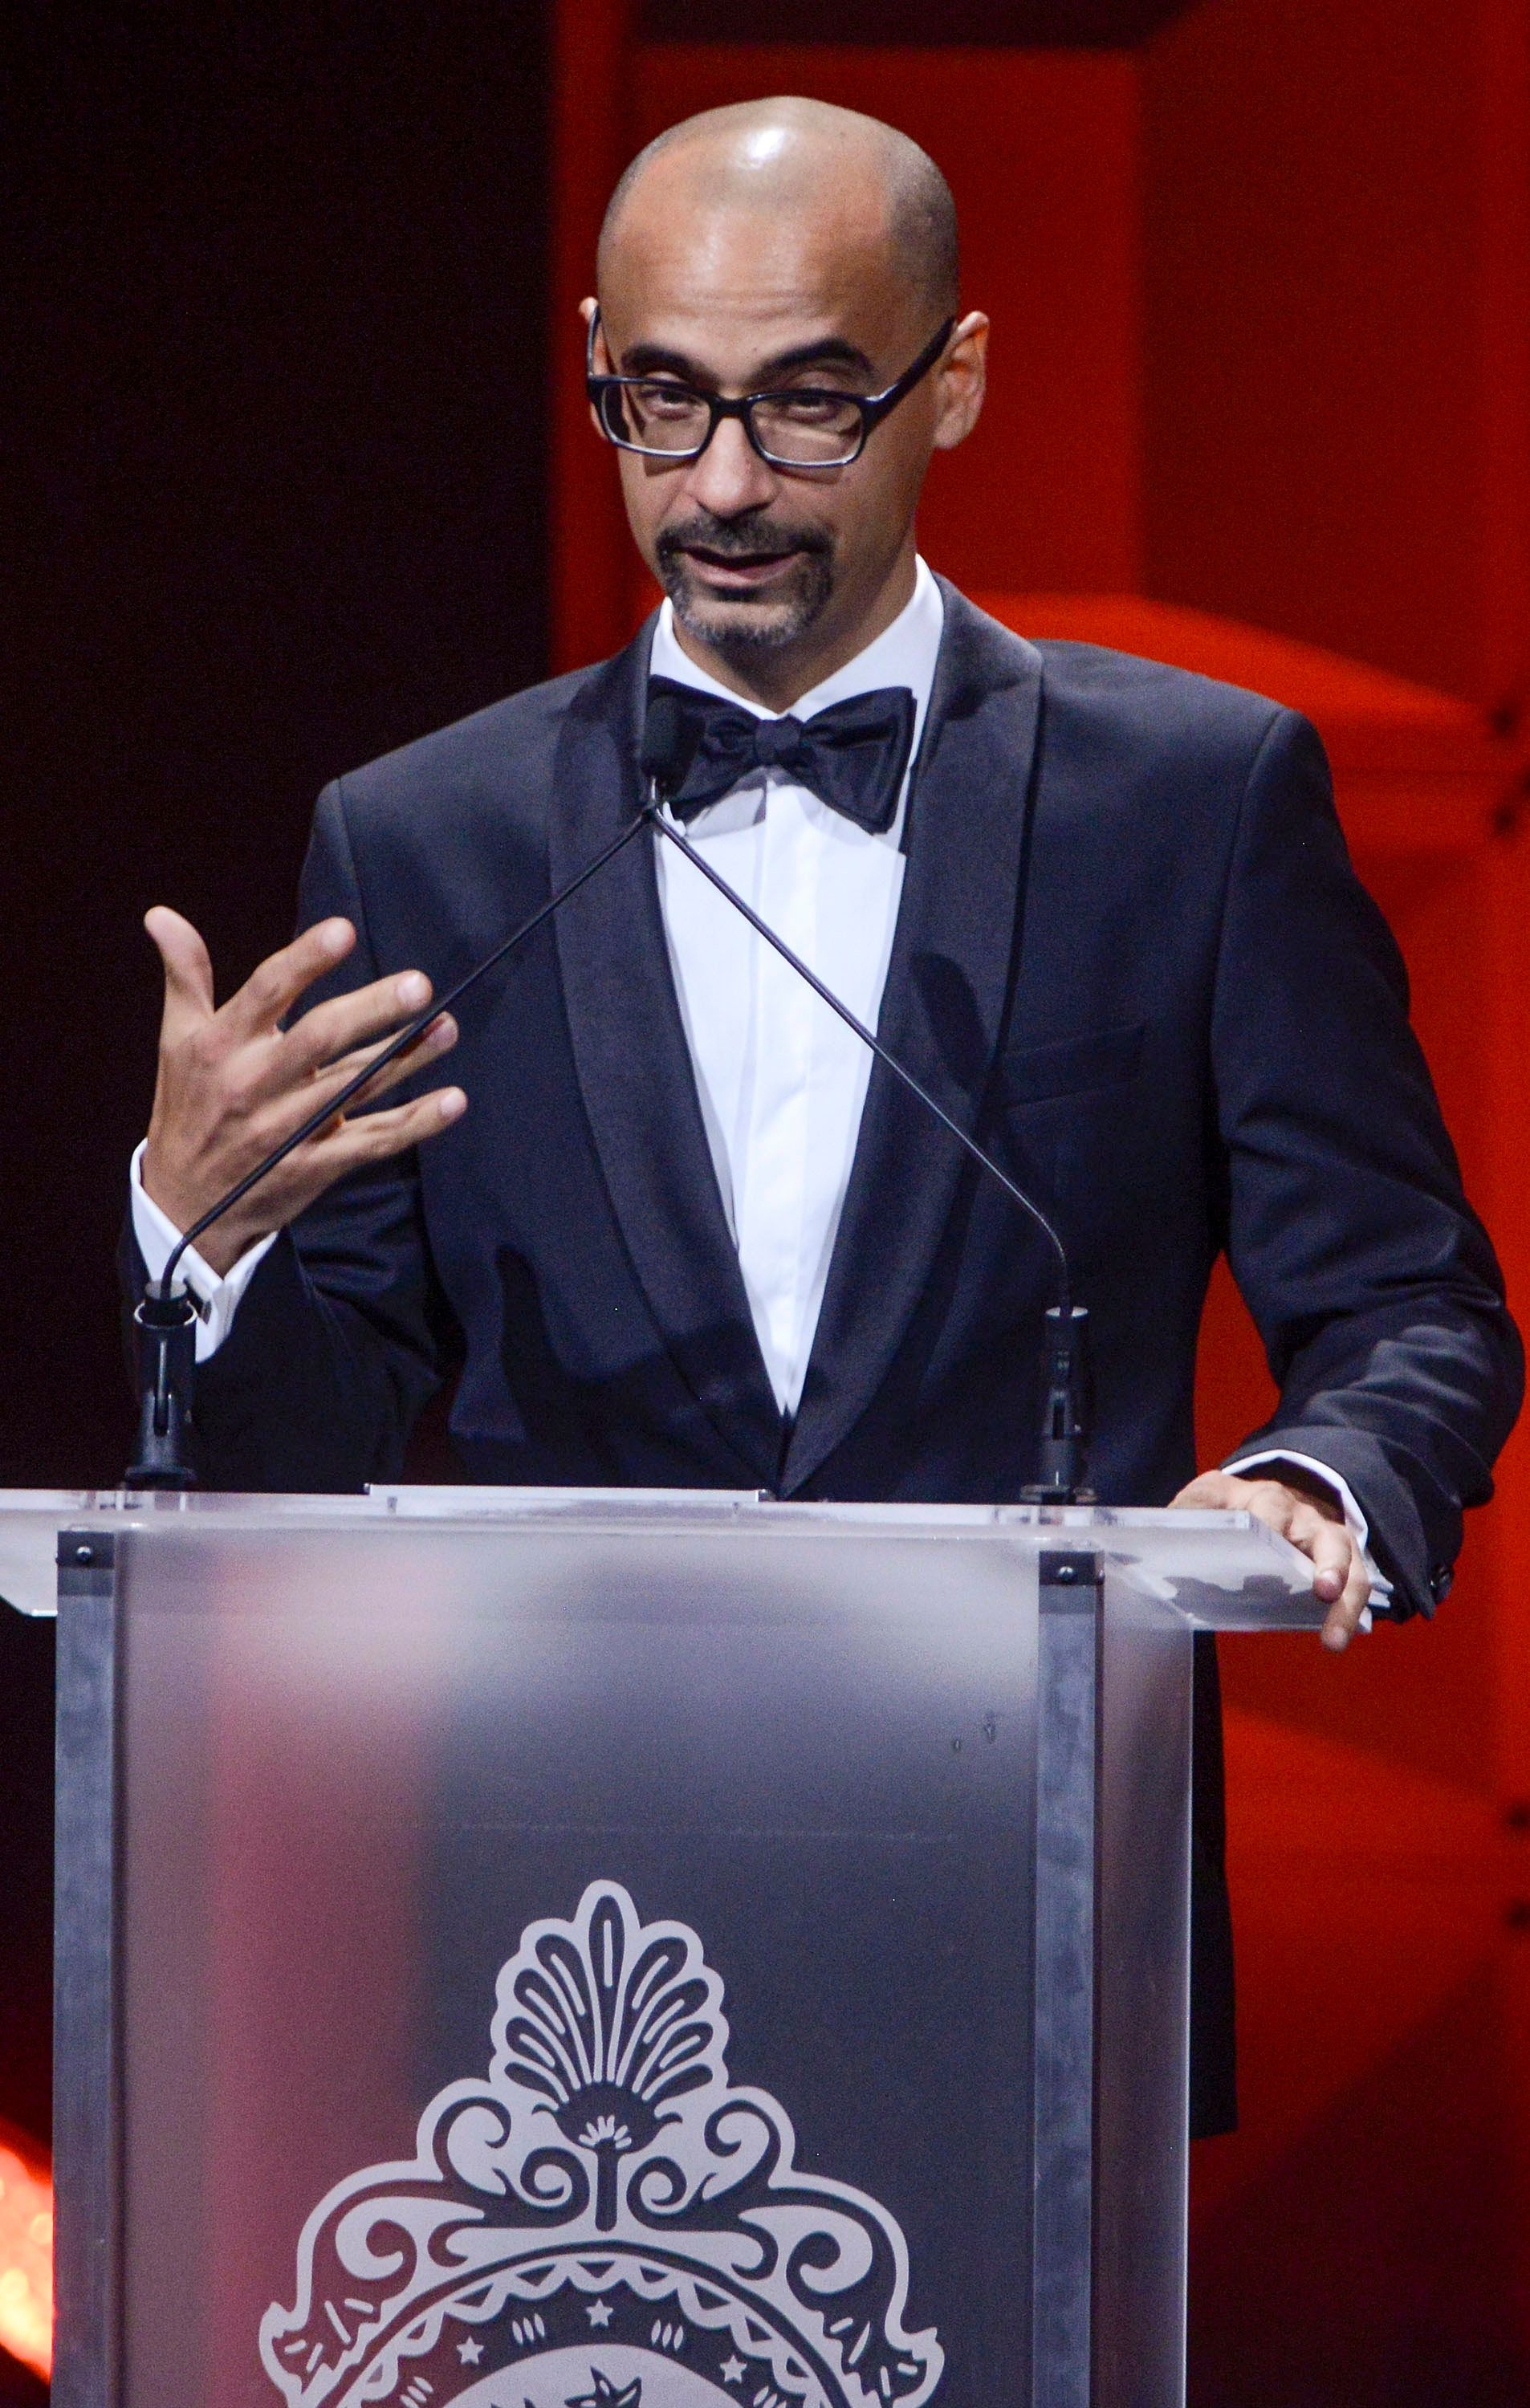 WASHINGTON, DC - SEPTEMBER 22: Junot Diaz receives a Literature Award during the 29th Hispanic Heritage Awards at the Warner Theatre on September 22, 2016 in Washington, DC.  (Photo by Leigh Vogel/Getty Images)